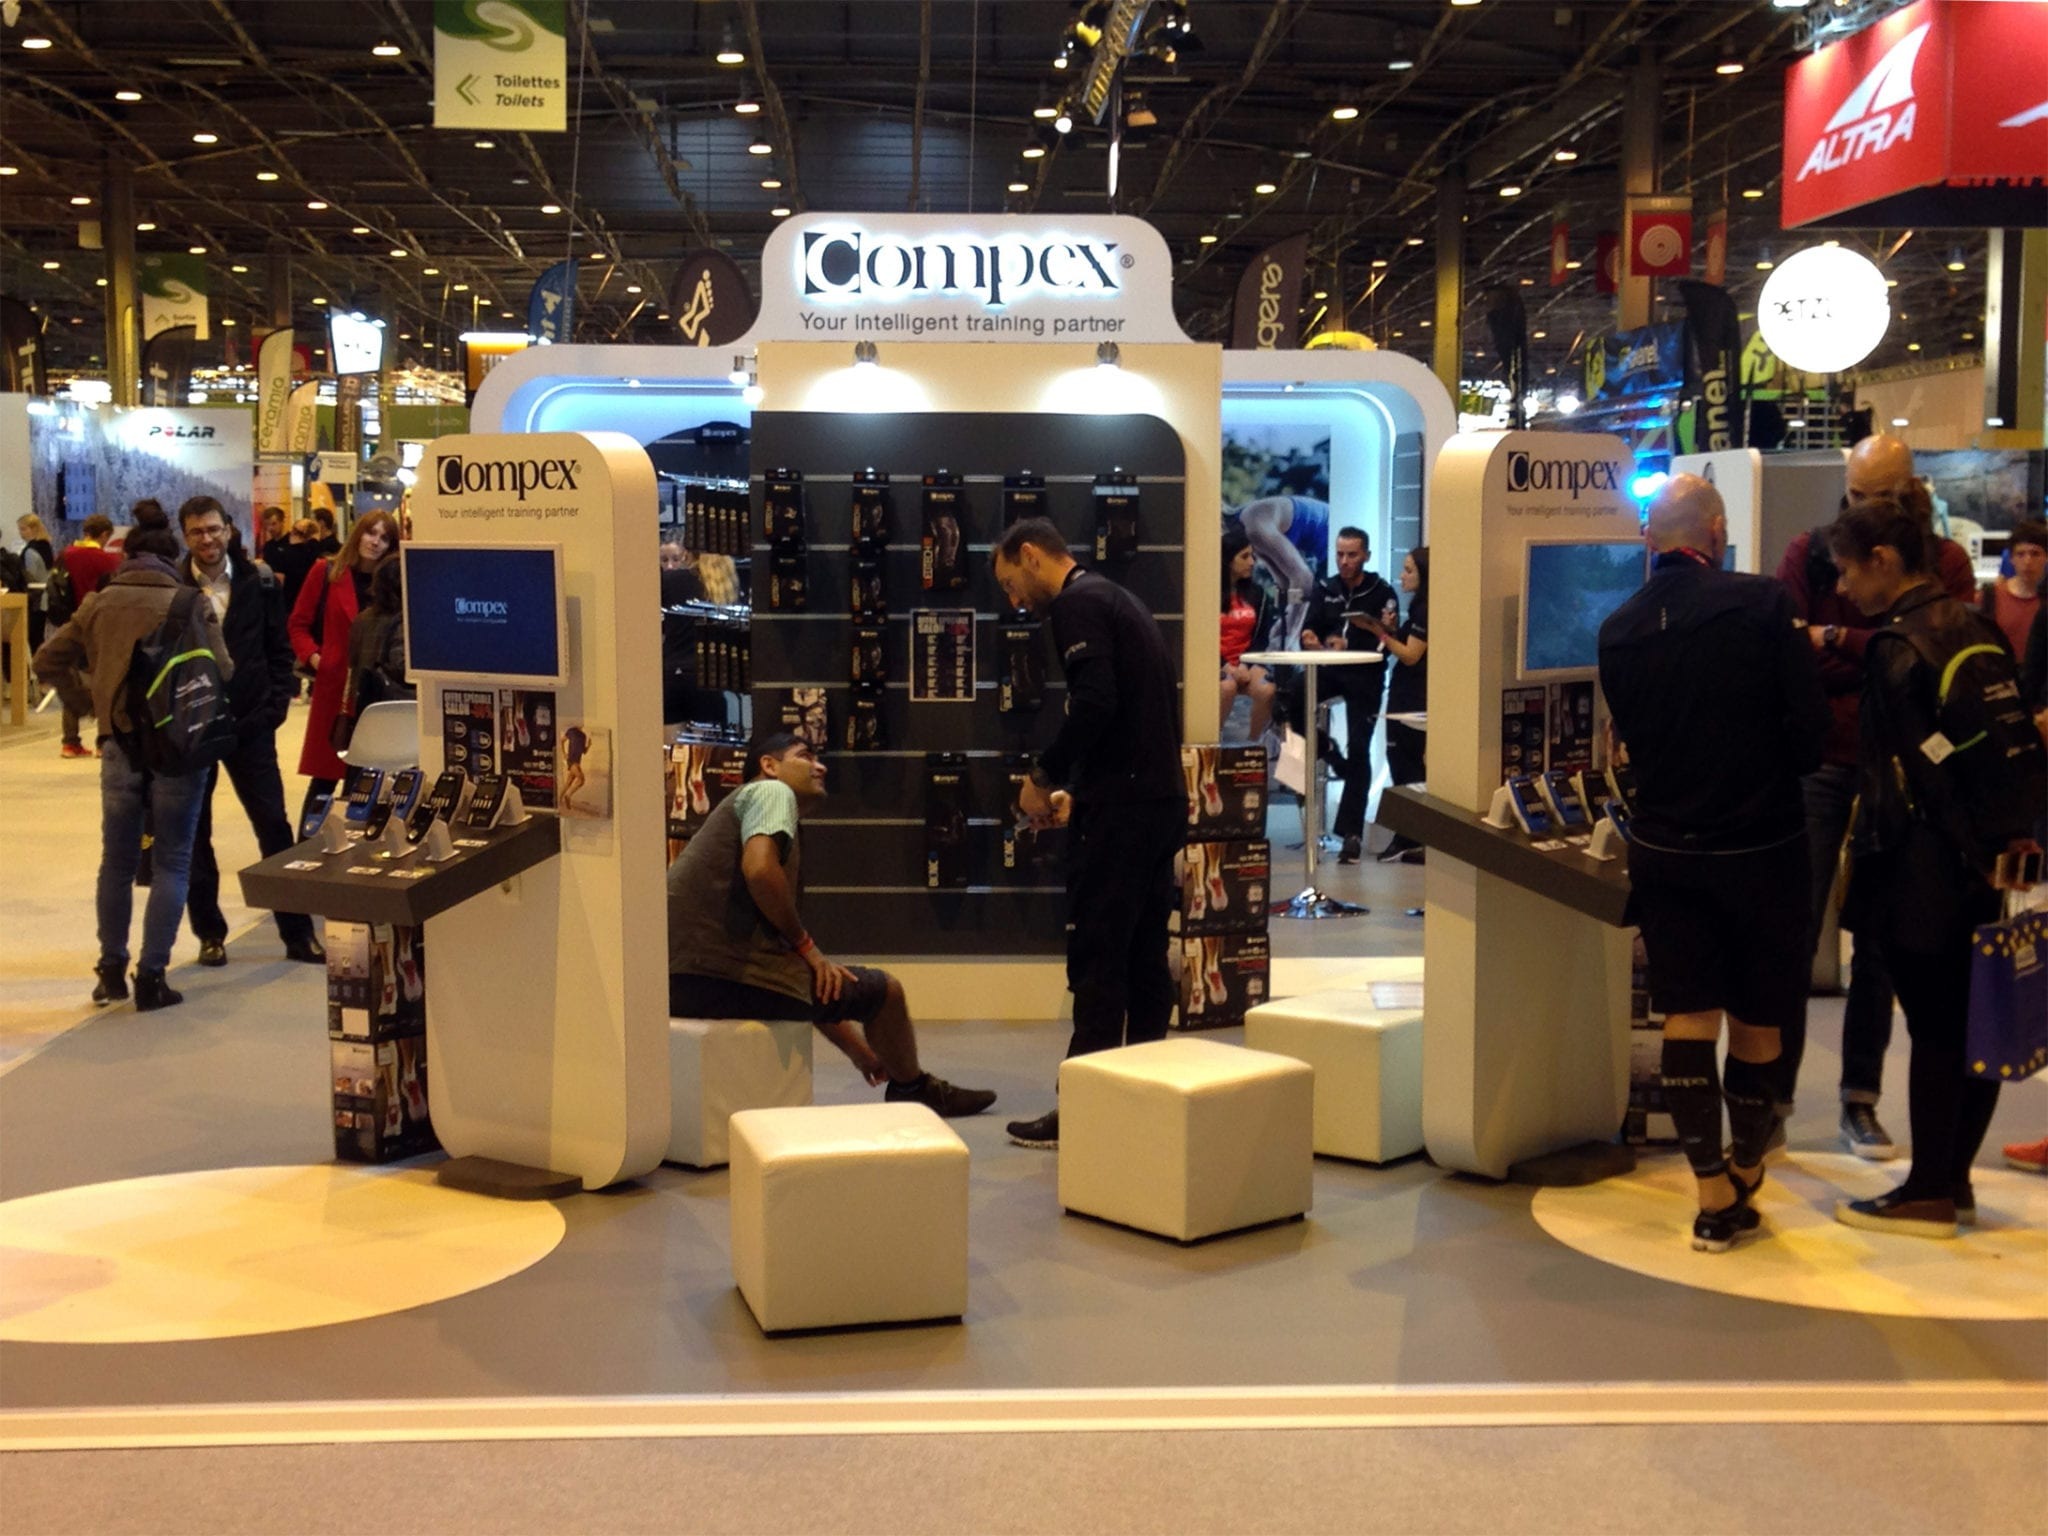 salon-du-running-compex01